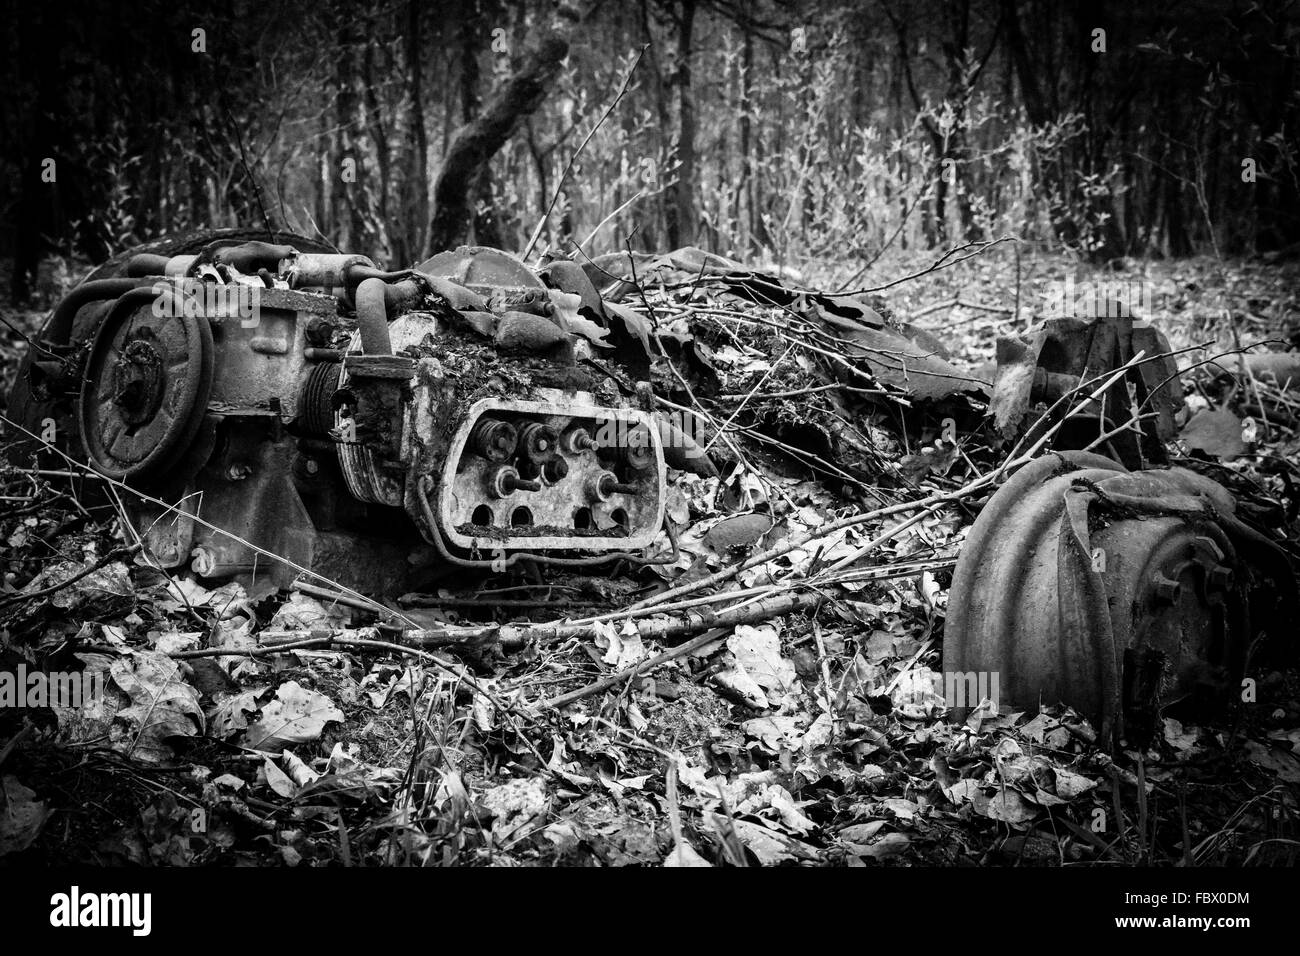 Wreck of a car in the woods - Stock Image